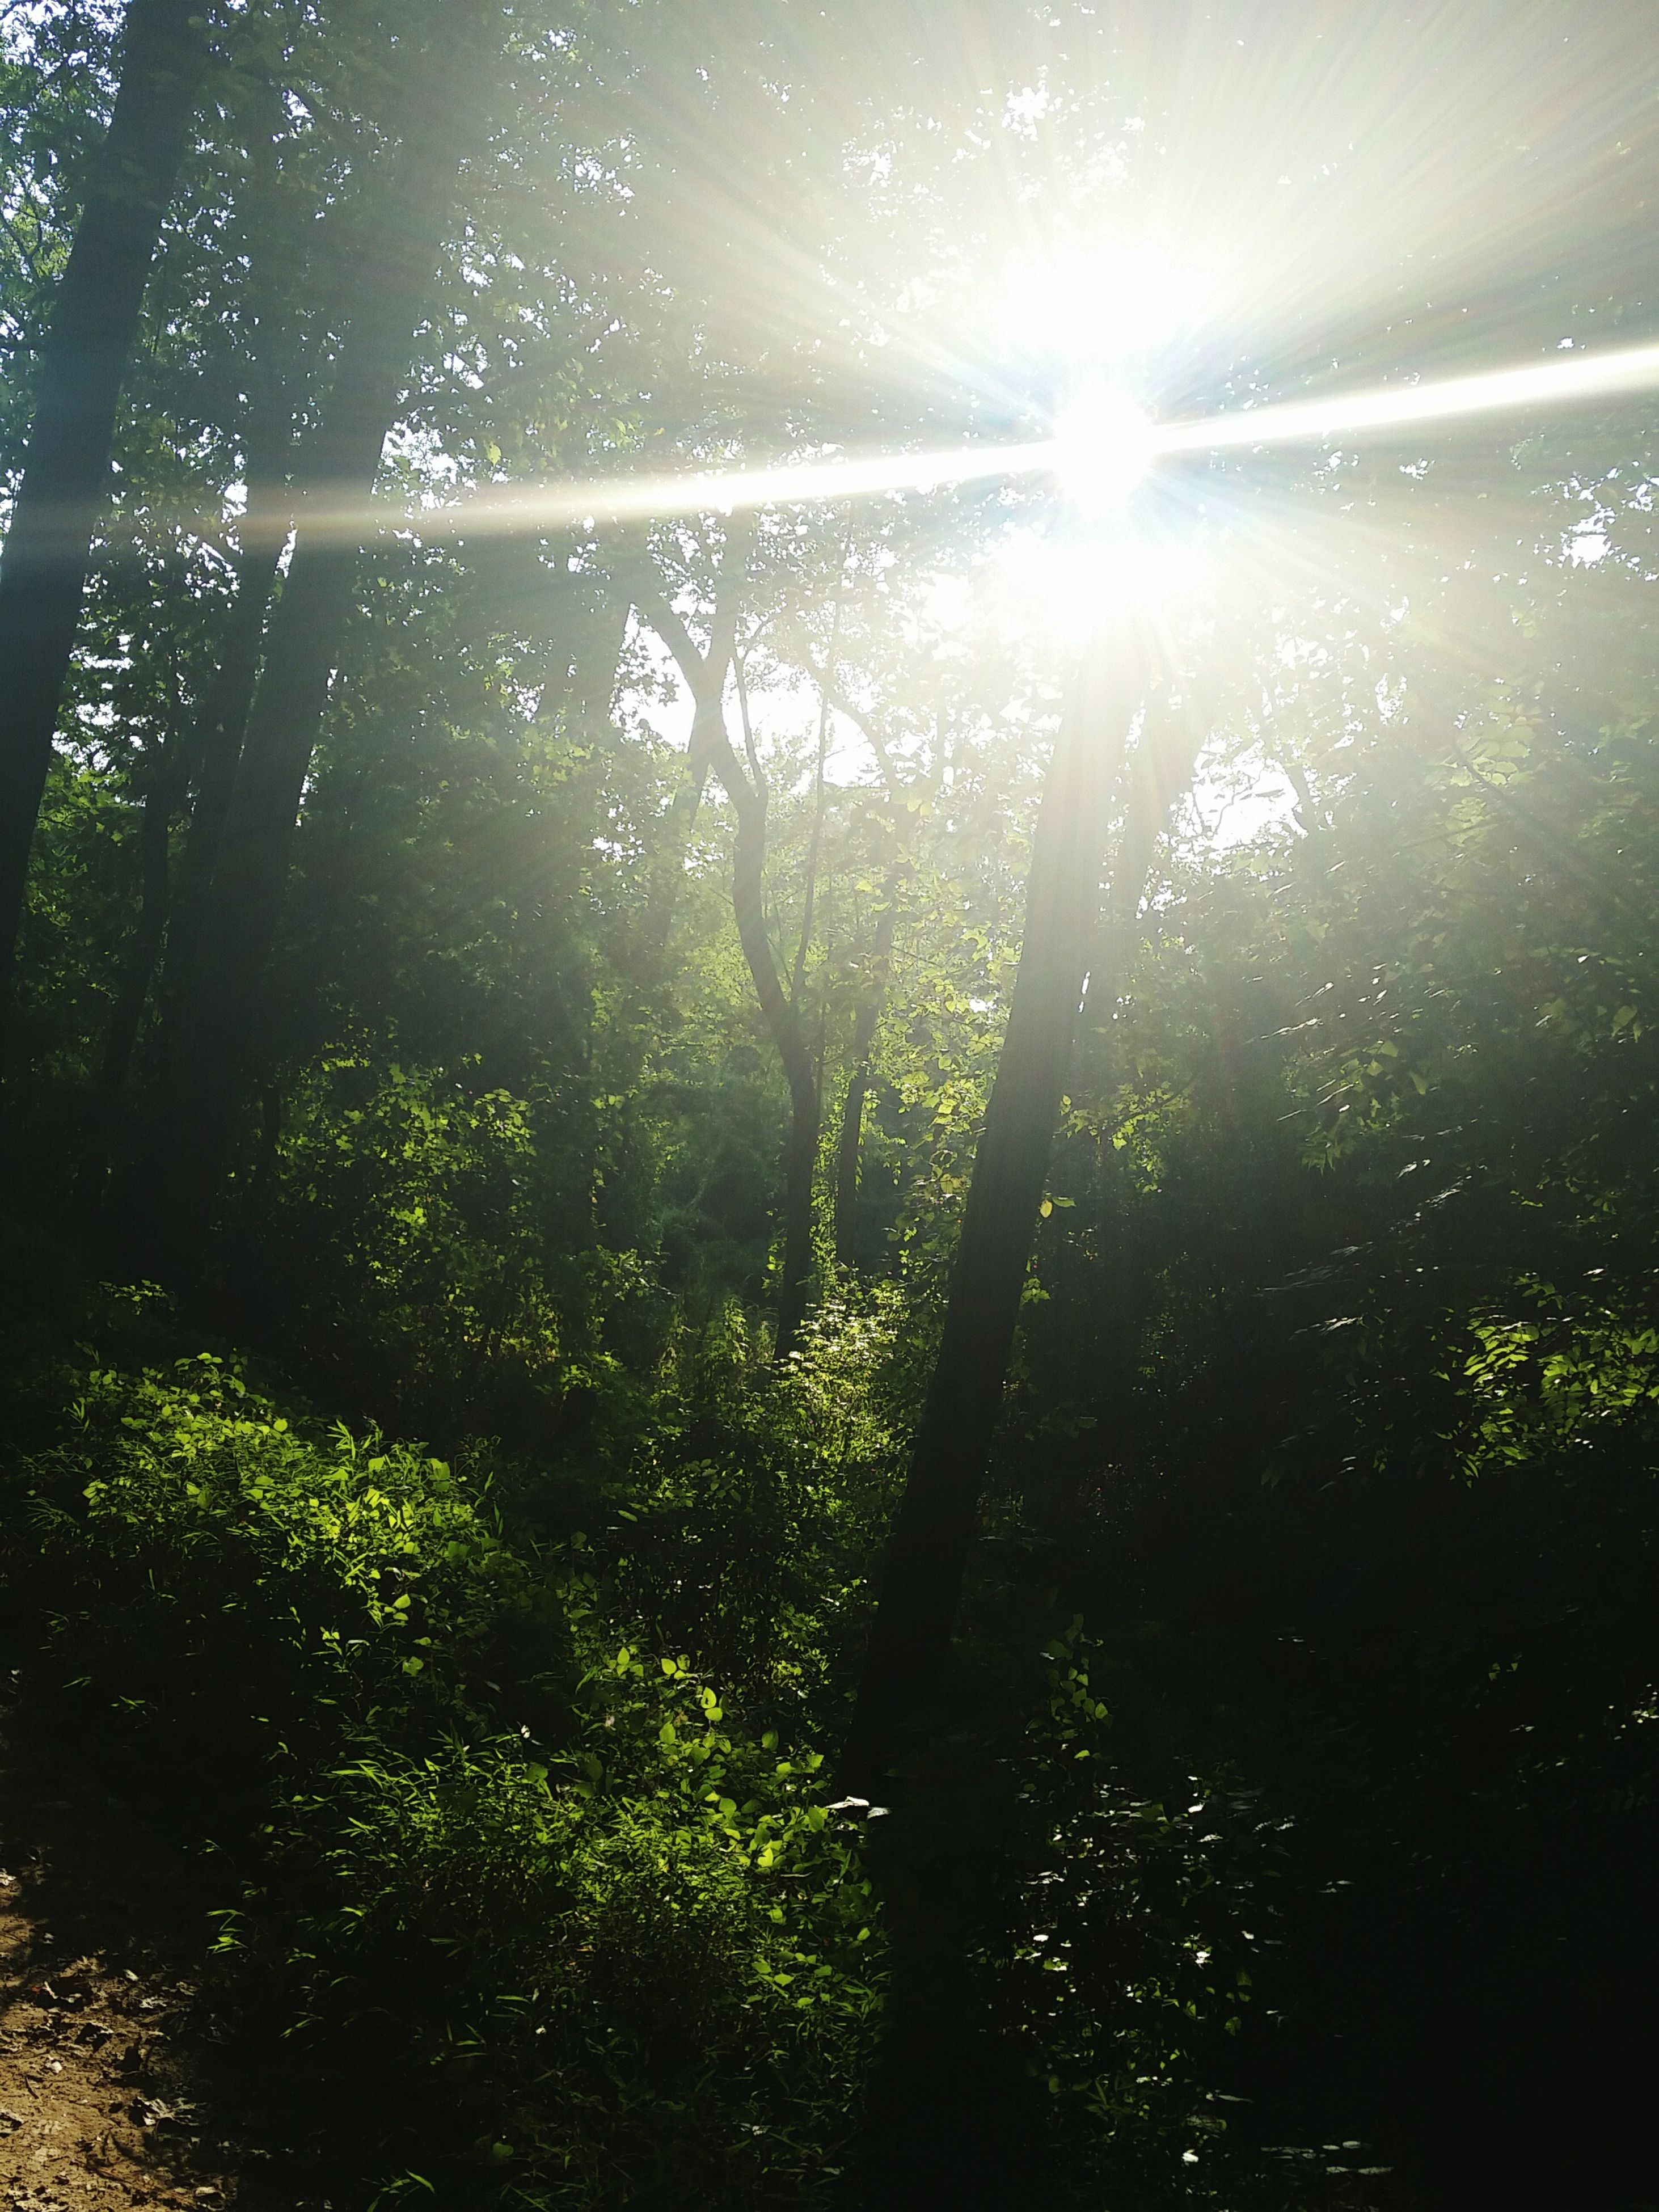 sunbeam, sun, tree, sunlight, lens flare, tranquility, growth, beauty in nature, nature, tranquil scene, scenics, sunny, forest, bright, green color, day, plant, idyllic, non-urban scene, tree trunk, no people, outdoors, back lit, shiny, landscape, sky, grass, woodland, remote, growing, non urban scene, lush foliage, brightly lit